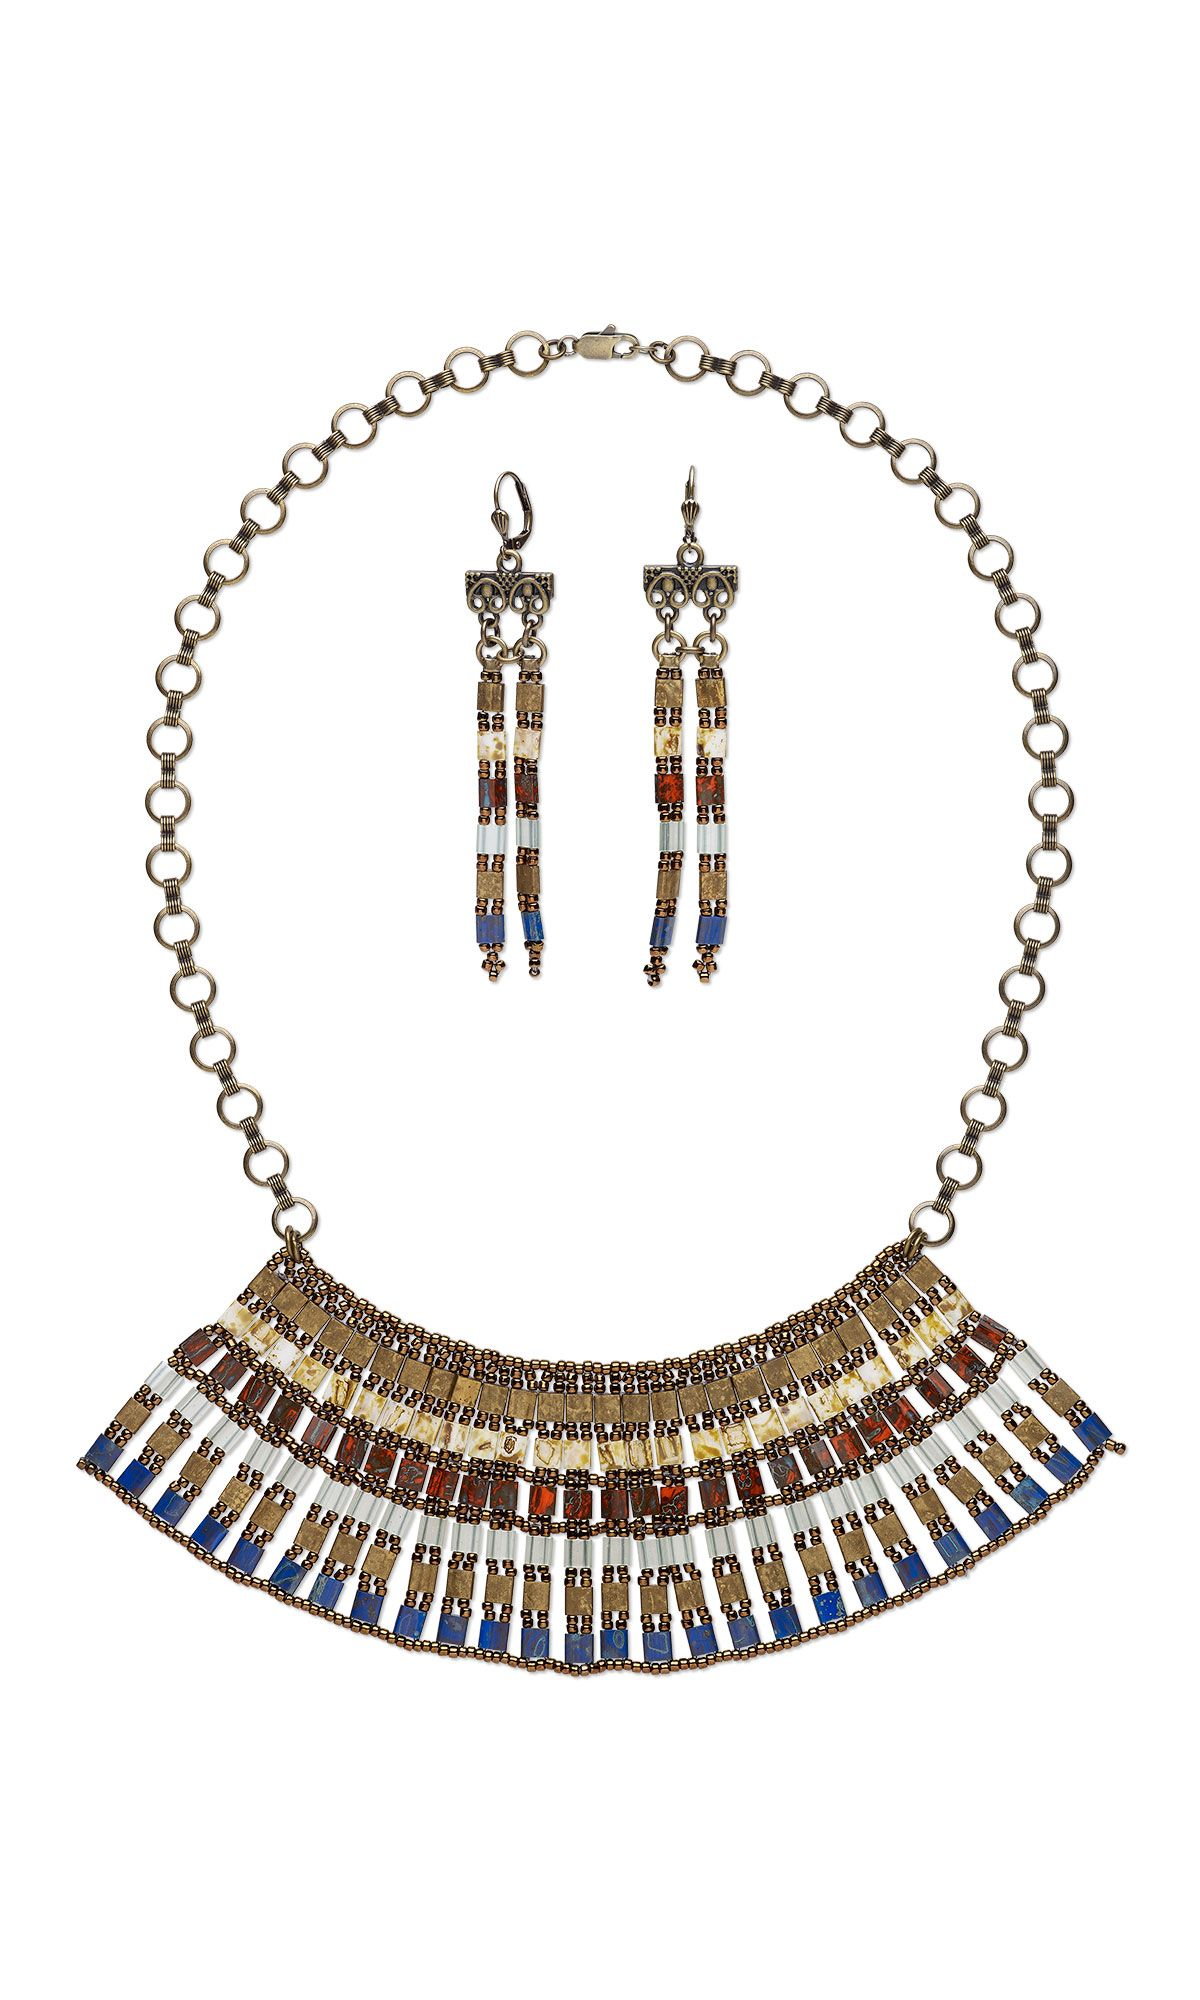 Jewelry Design - Bib-Style Necklace and Earring Set with Tila® Beads - Fire Mountain Gems and Beads